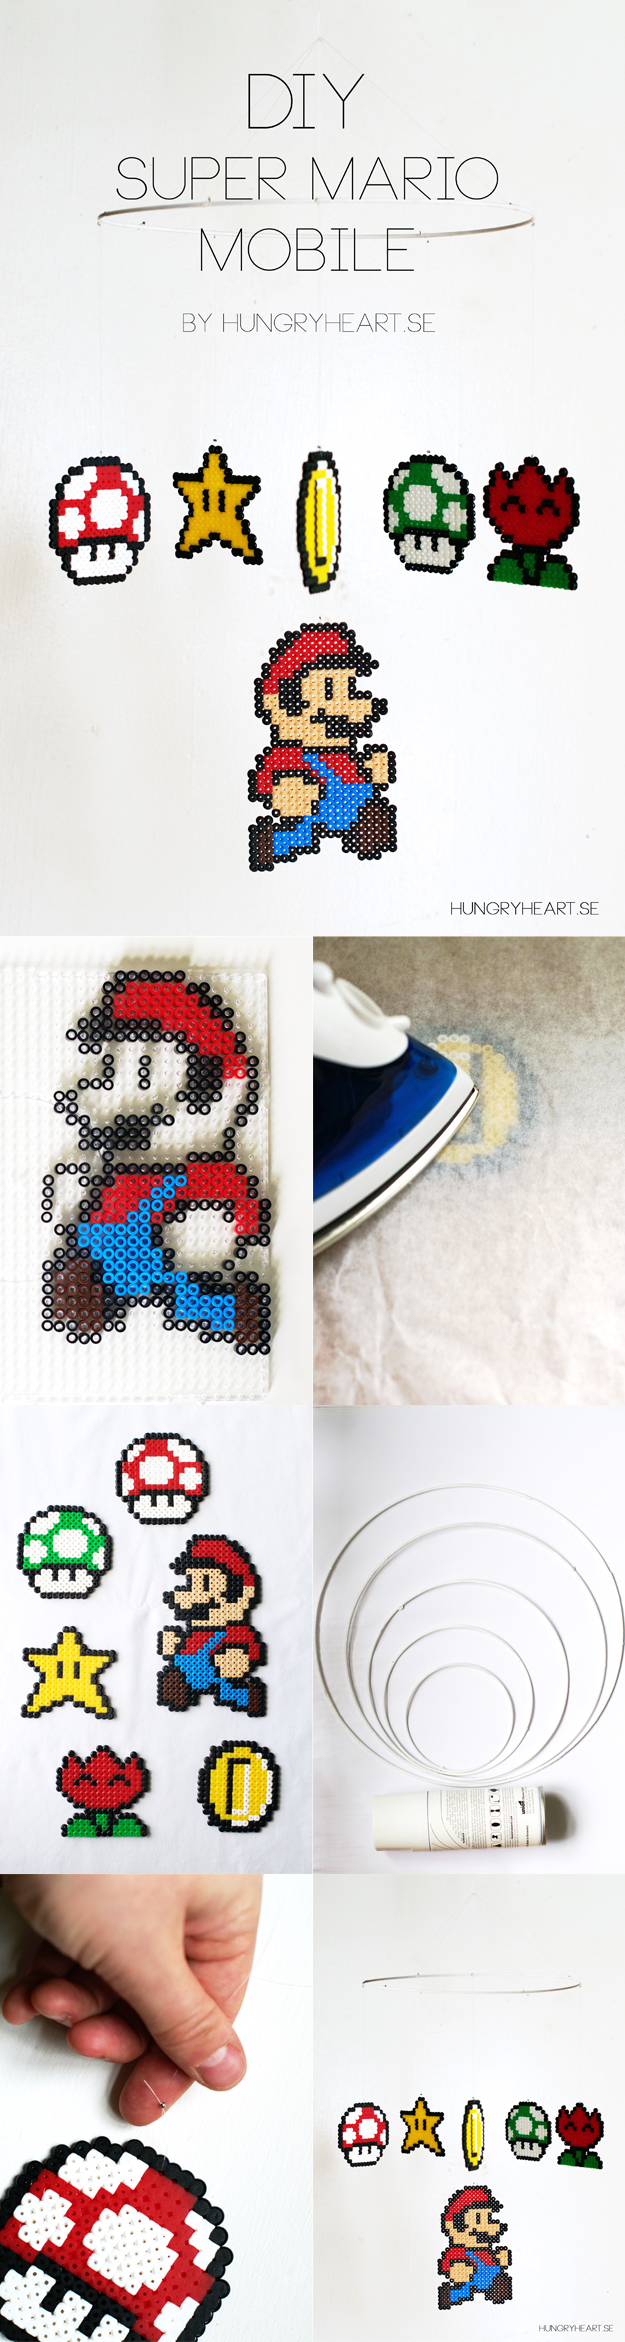 DIY Super Mario Mobile Tutorial | HungryHeart.se